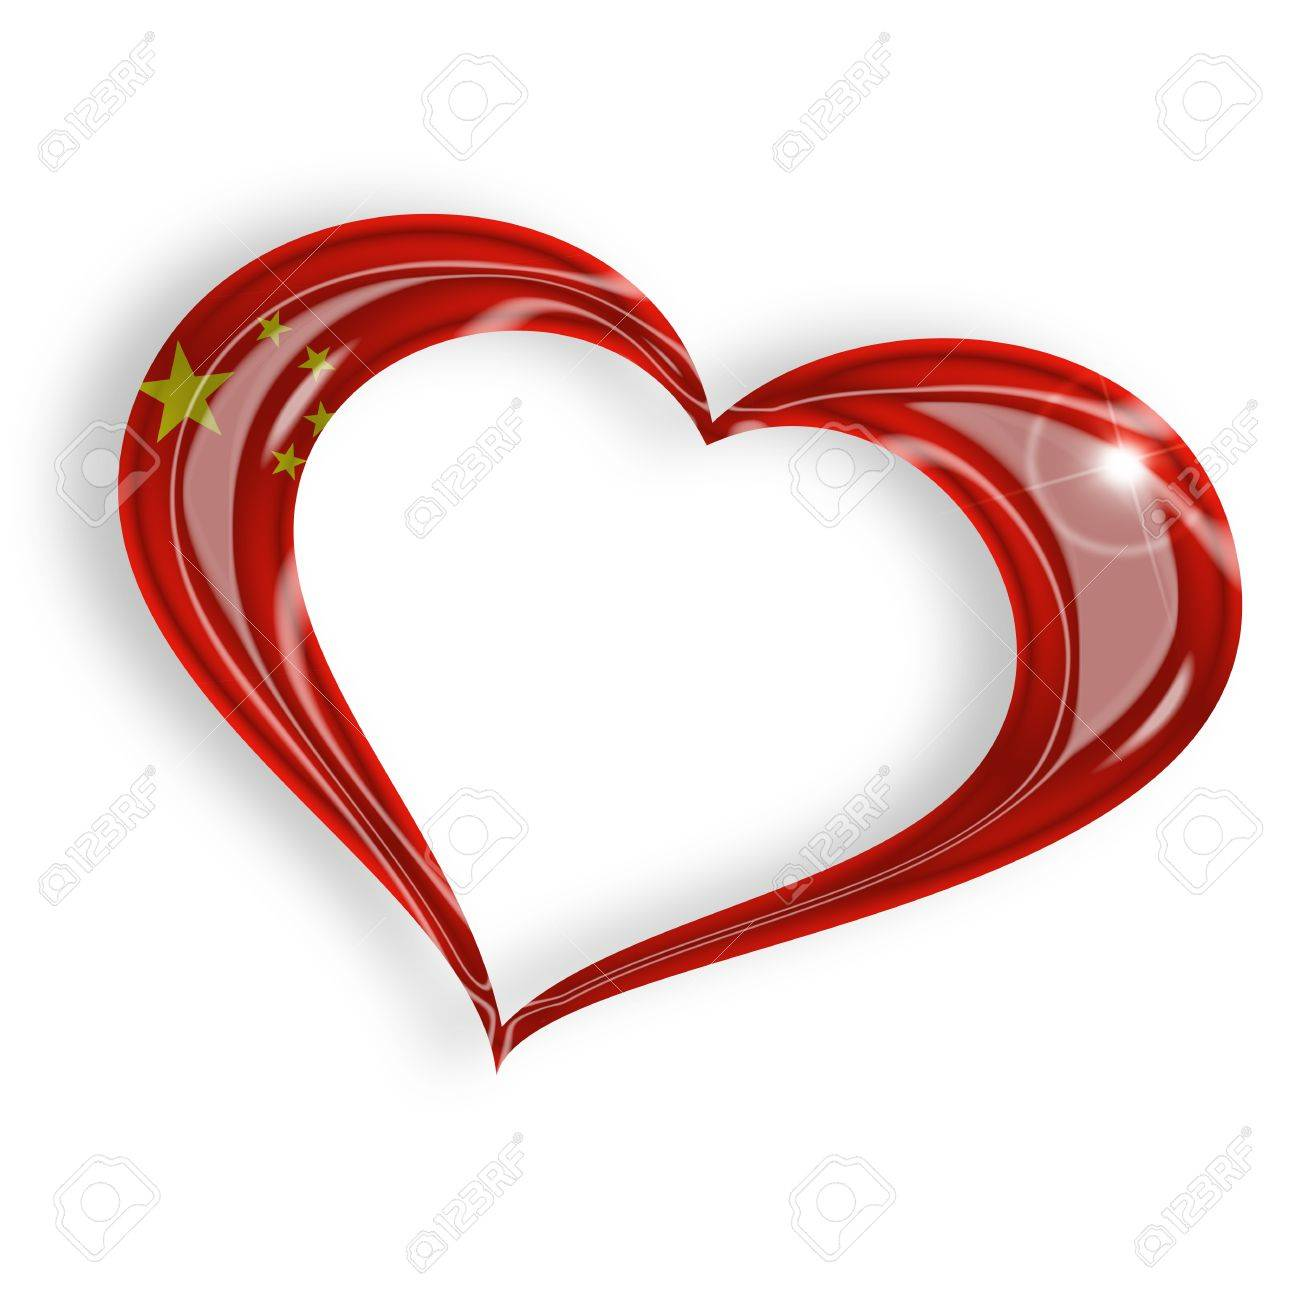 Heart with chinese flag on white background stock photo picture heart with chinese flag on white background stock photo 17695282 buycottarizona